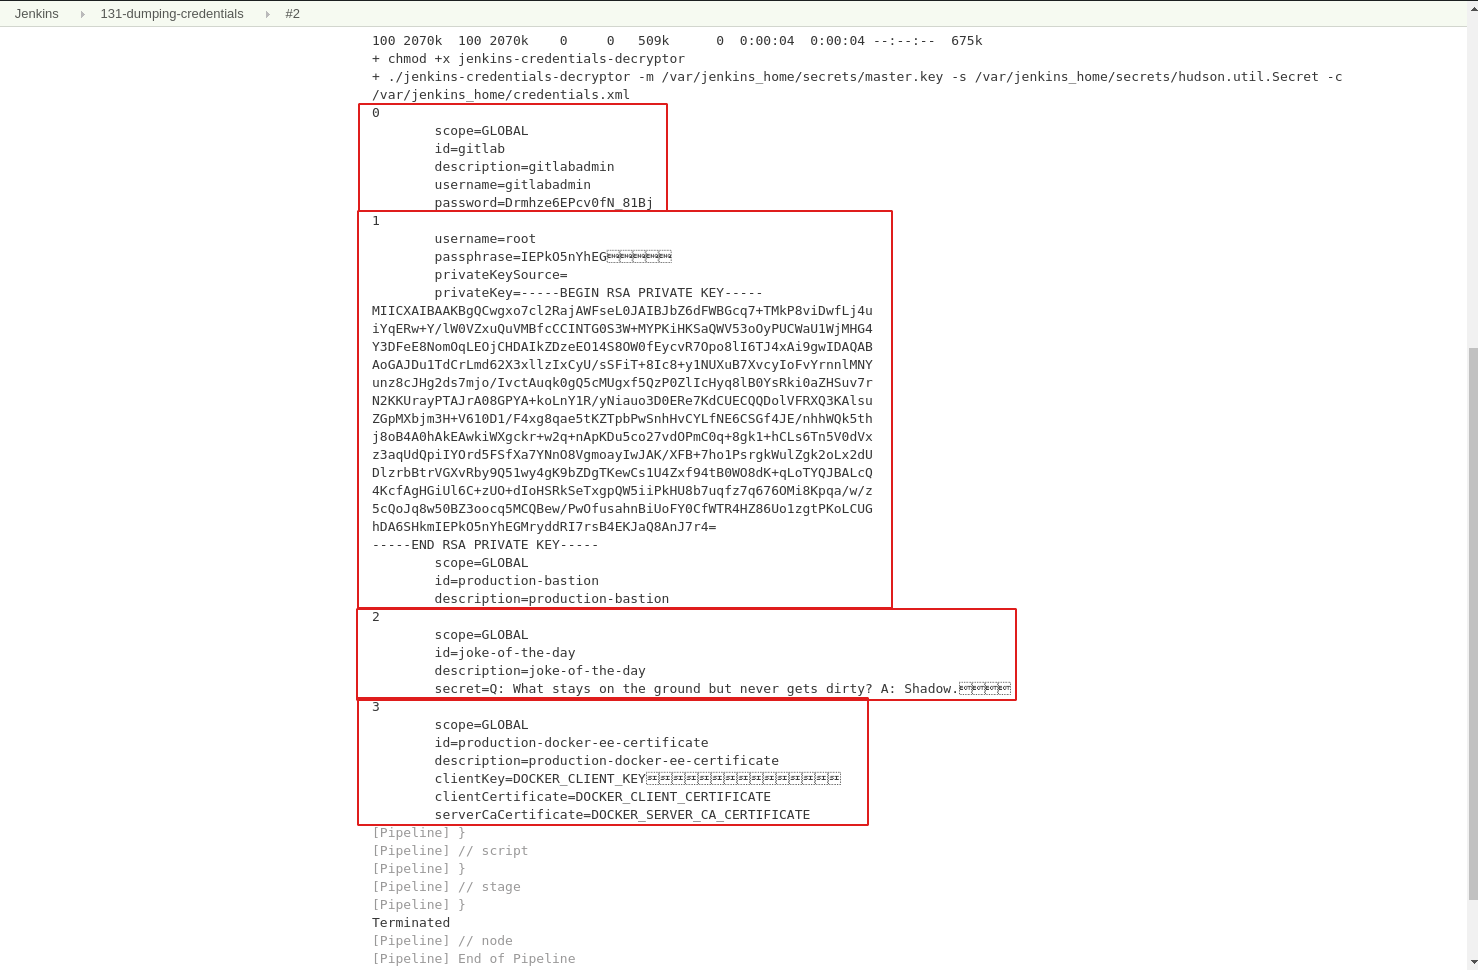 Accessing and dumping Jenkins credentials - Andrzej Rehmann